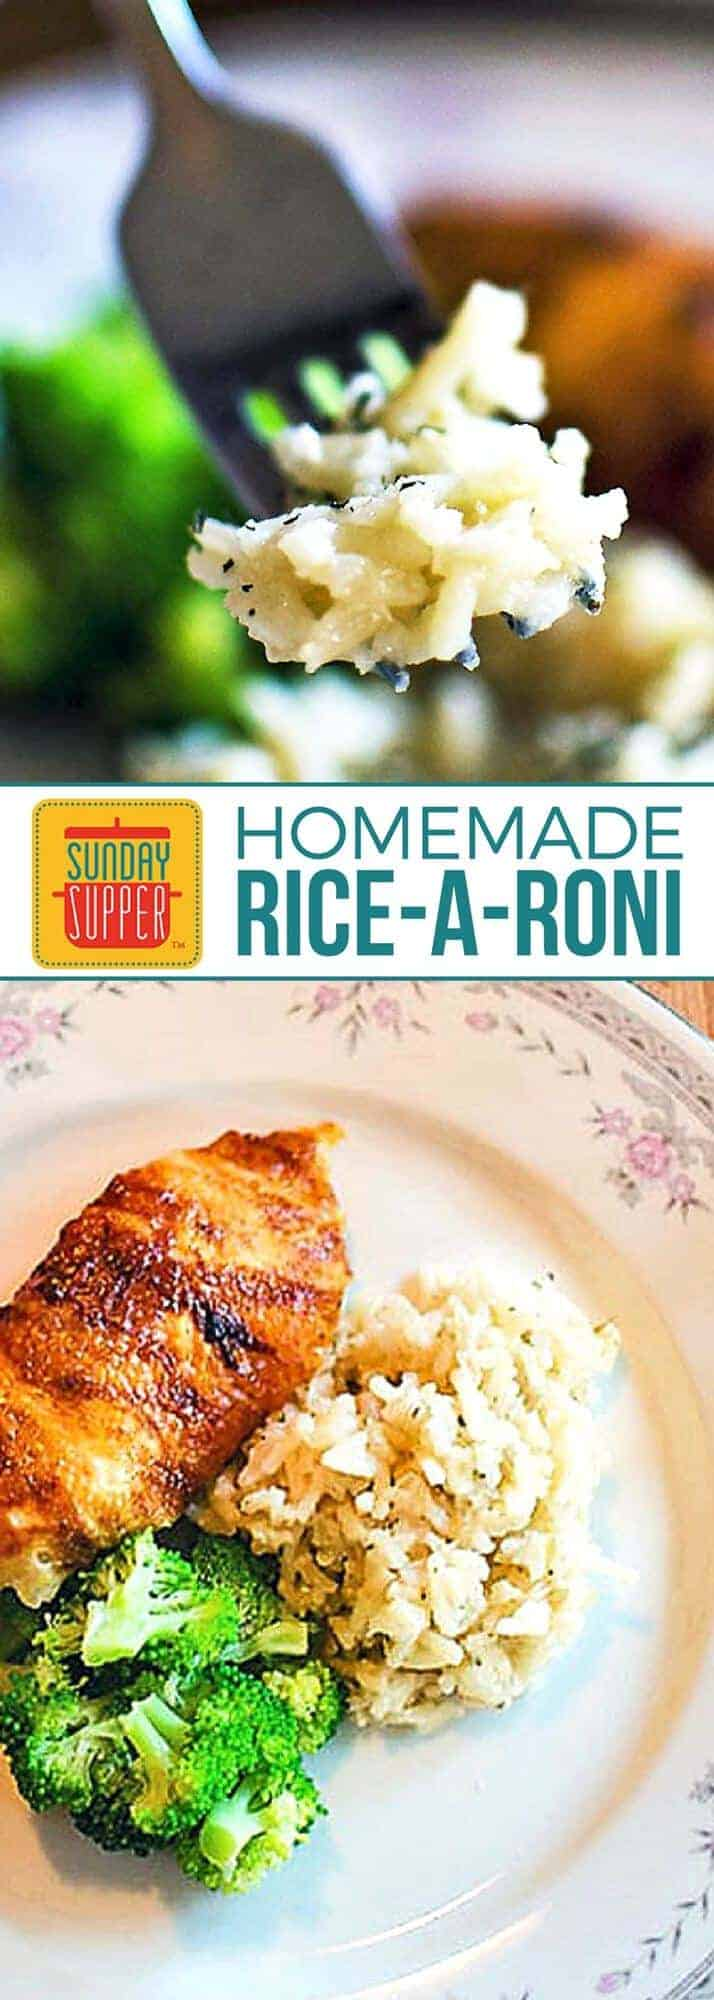 Make Rice-A-Roni from scratch with our Homemade Rice-A-Roni recipe! It's just as quick and easy as the popular box mix, but this version has less ingredients and is gluten free too! Use this homemade version in your favorite Healthy Rice Bowls or as a side dish recipe. It's versatile enough to use with any protein and tastes great too! #SundaySupper #GlutenFreeRecipes #HealthyRecipes #HomemadeRecipes #CopycatRecipes